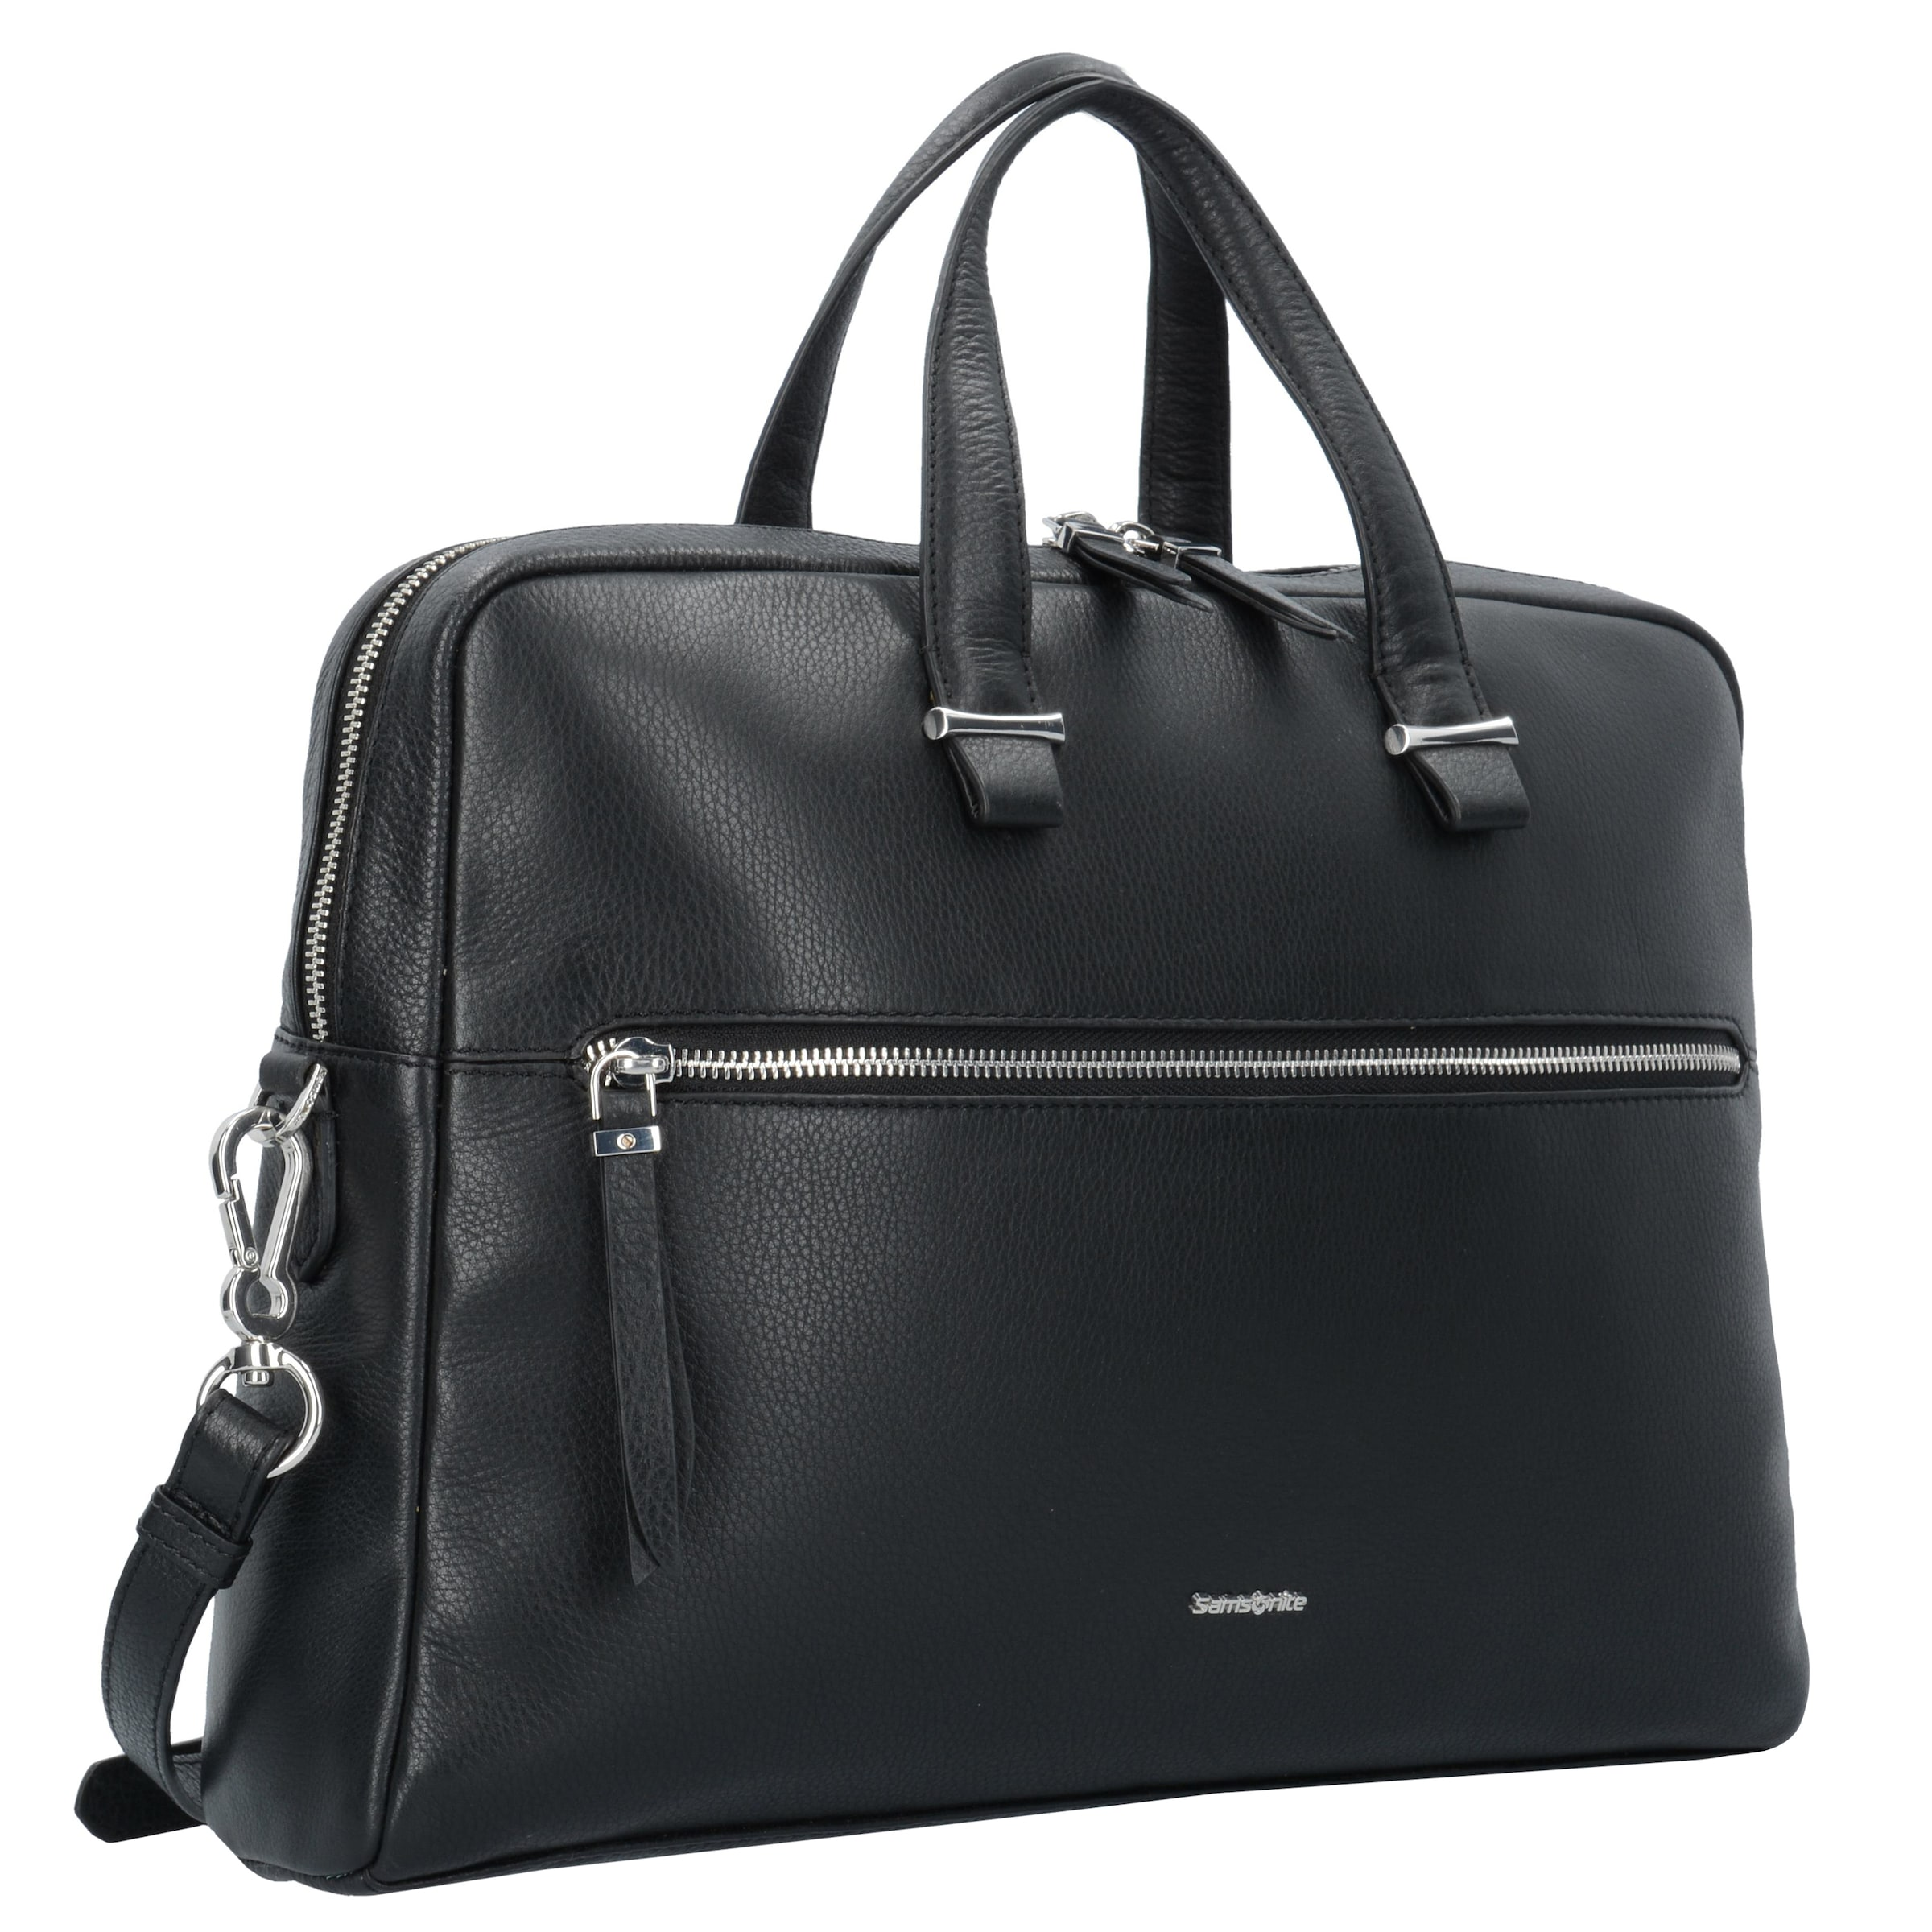 Cm Leder 39 Samsonite Highline Laptopfach In Aktentasche Schwarz Ii oeCBxd